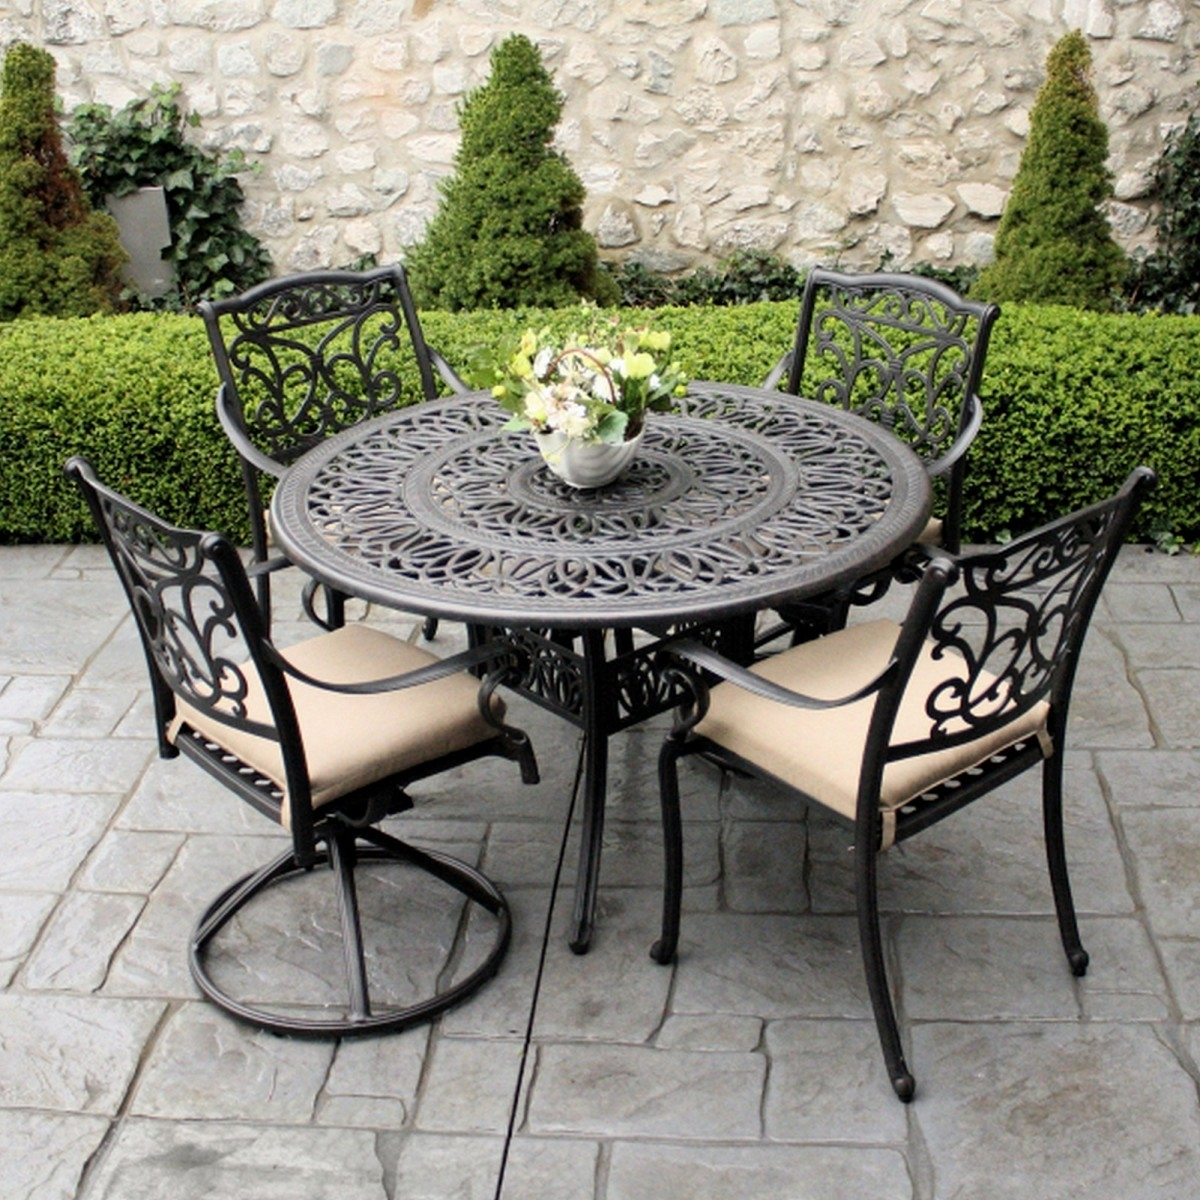 wrought iron patio furniture wrought iron patio chair patio furniture ideas for wrought iron patio TDOOXWL